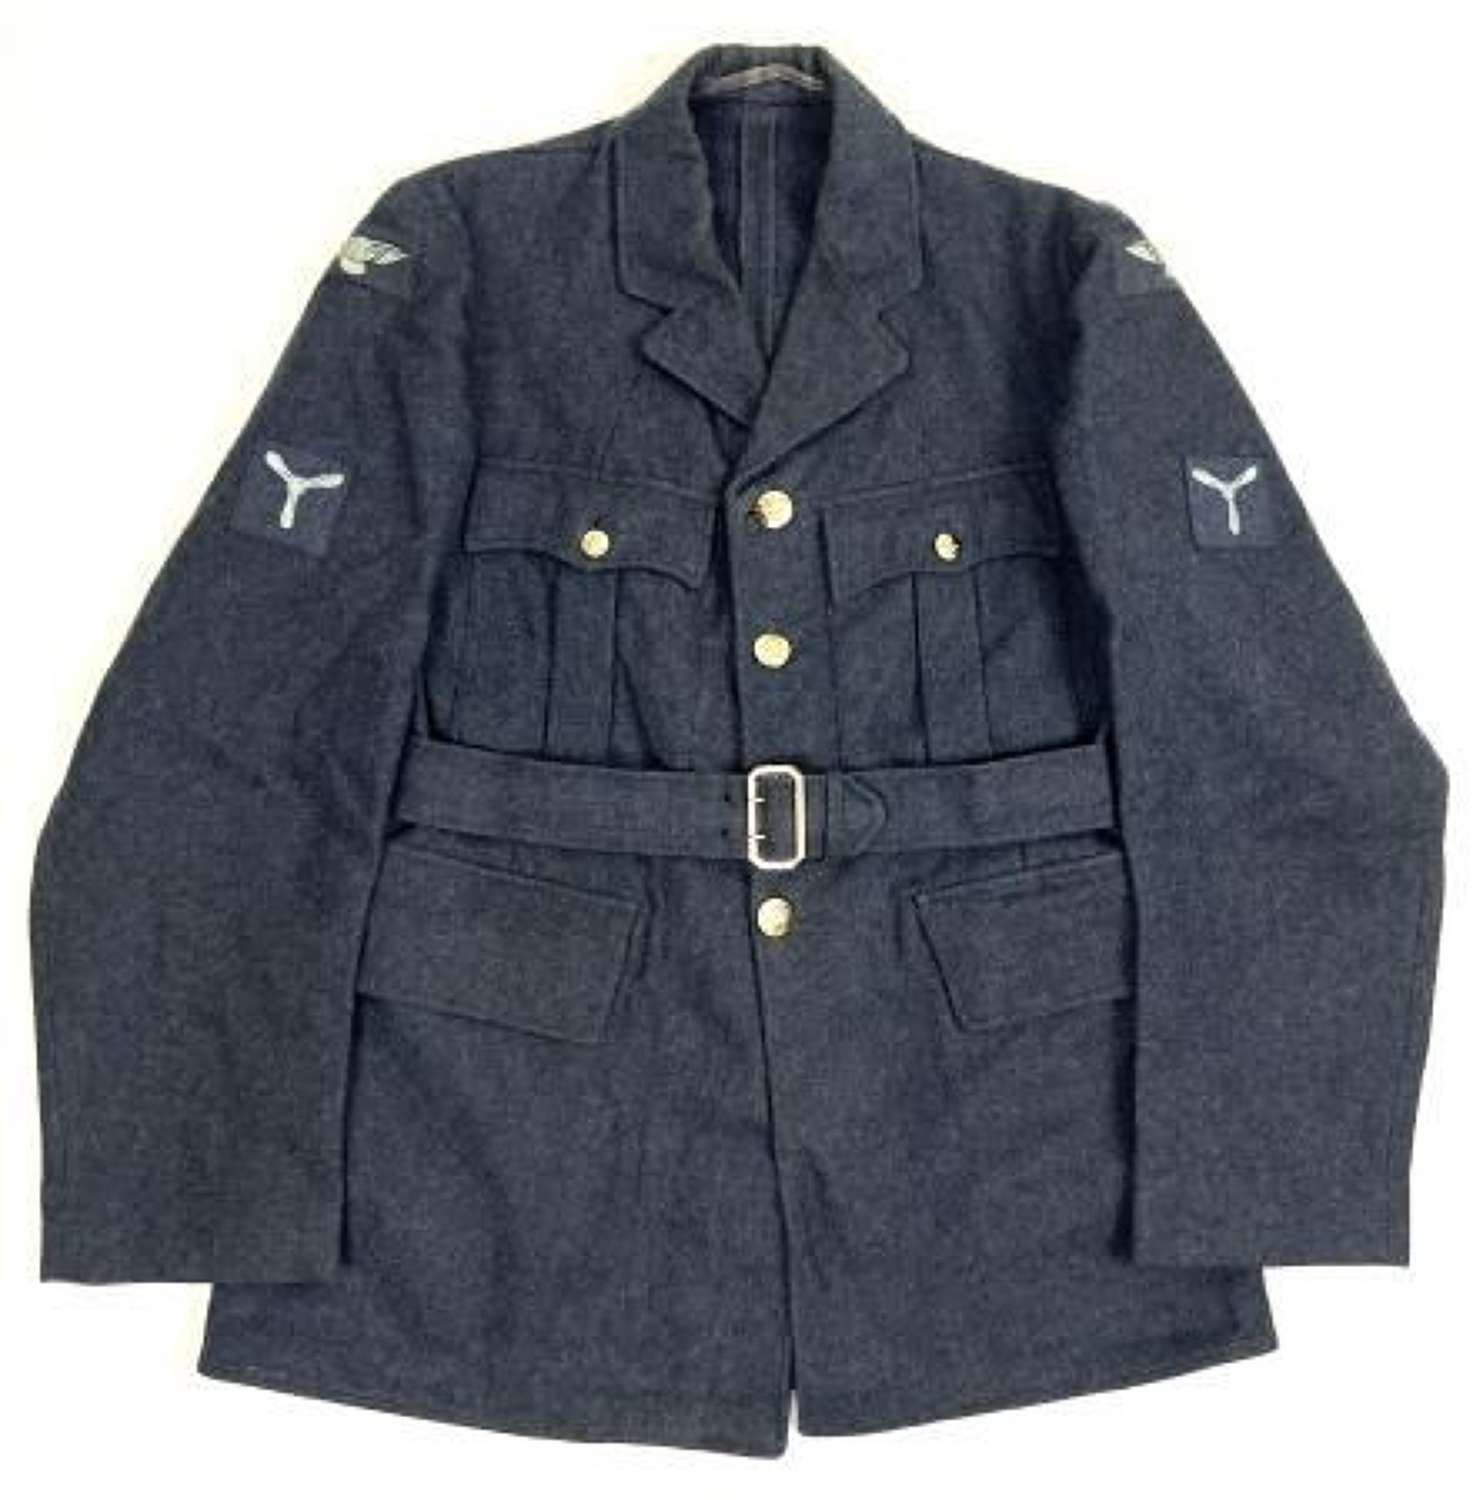 Original 1956 Dated RAF Ordianry Airman's Tunic - Size 15